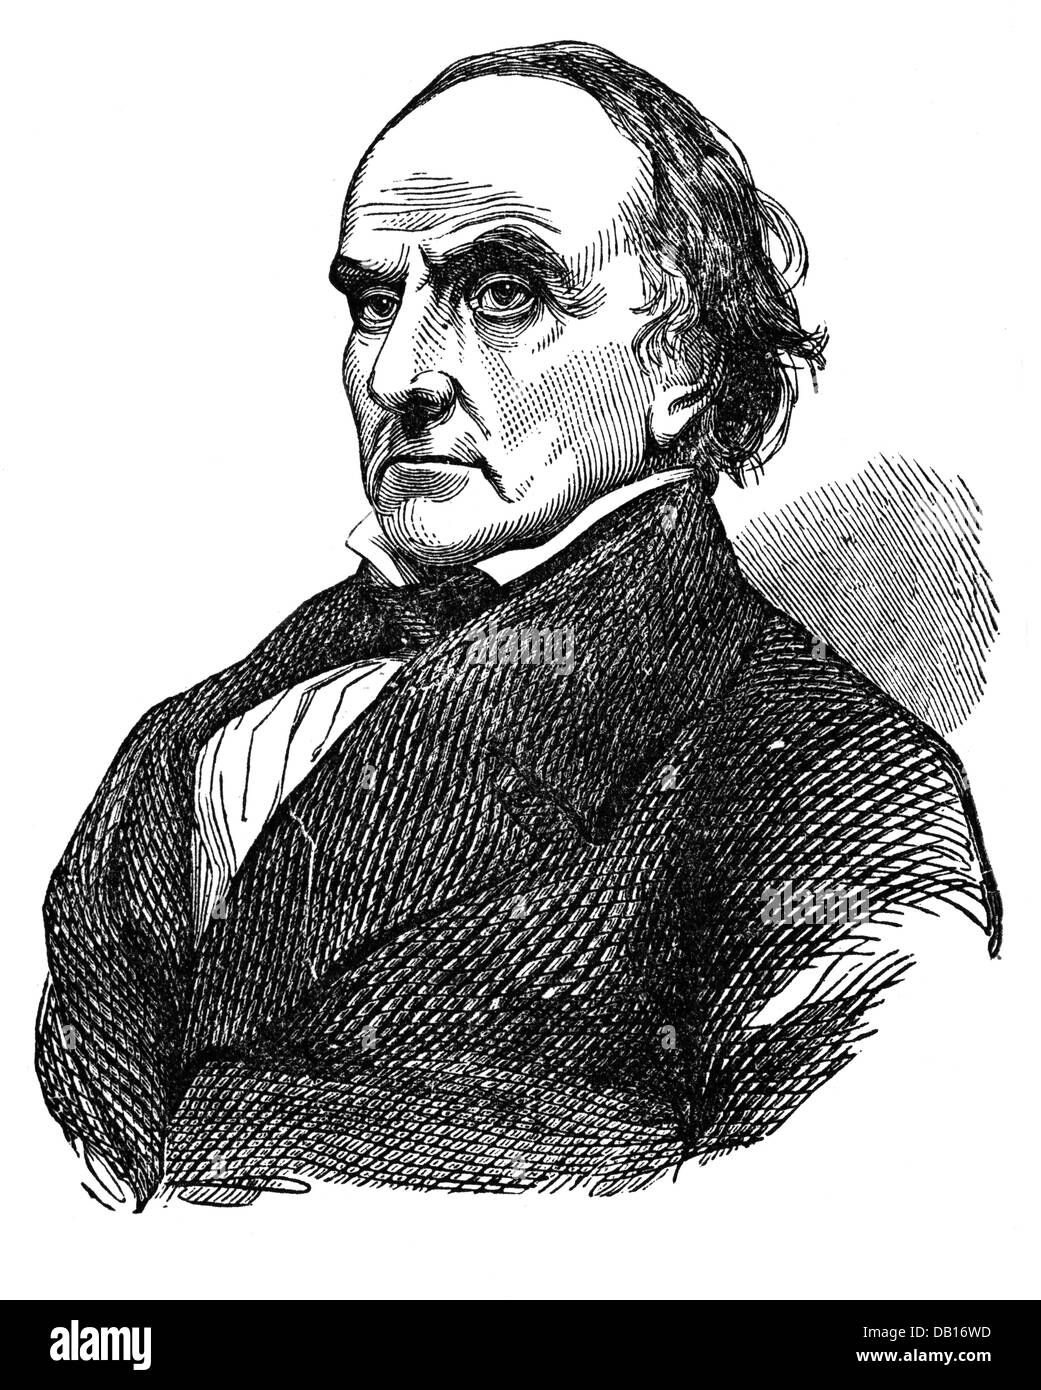 Webster, Daniel, 18.1.1782 - 24.10.1852, American politician, portrait, wood engraving,  19th century, Additional - Stock Image